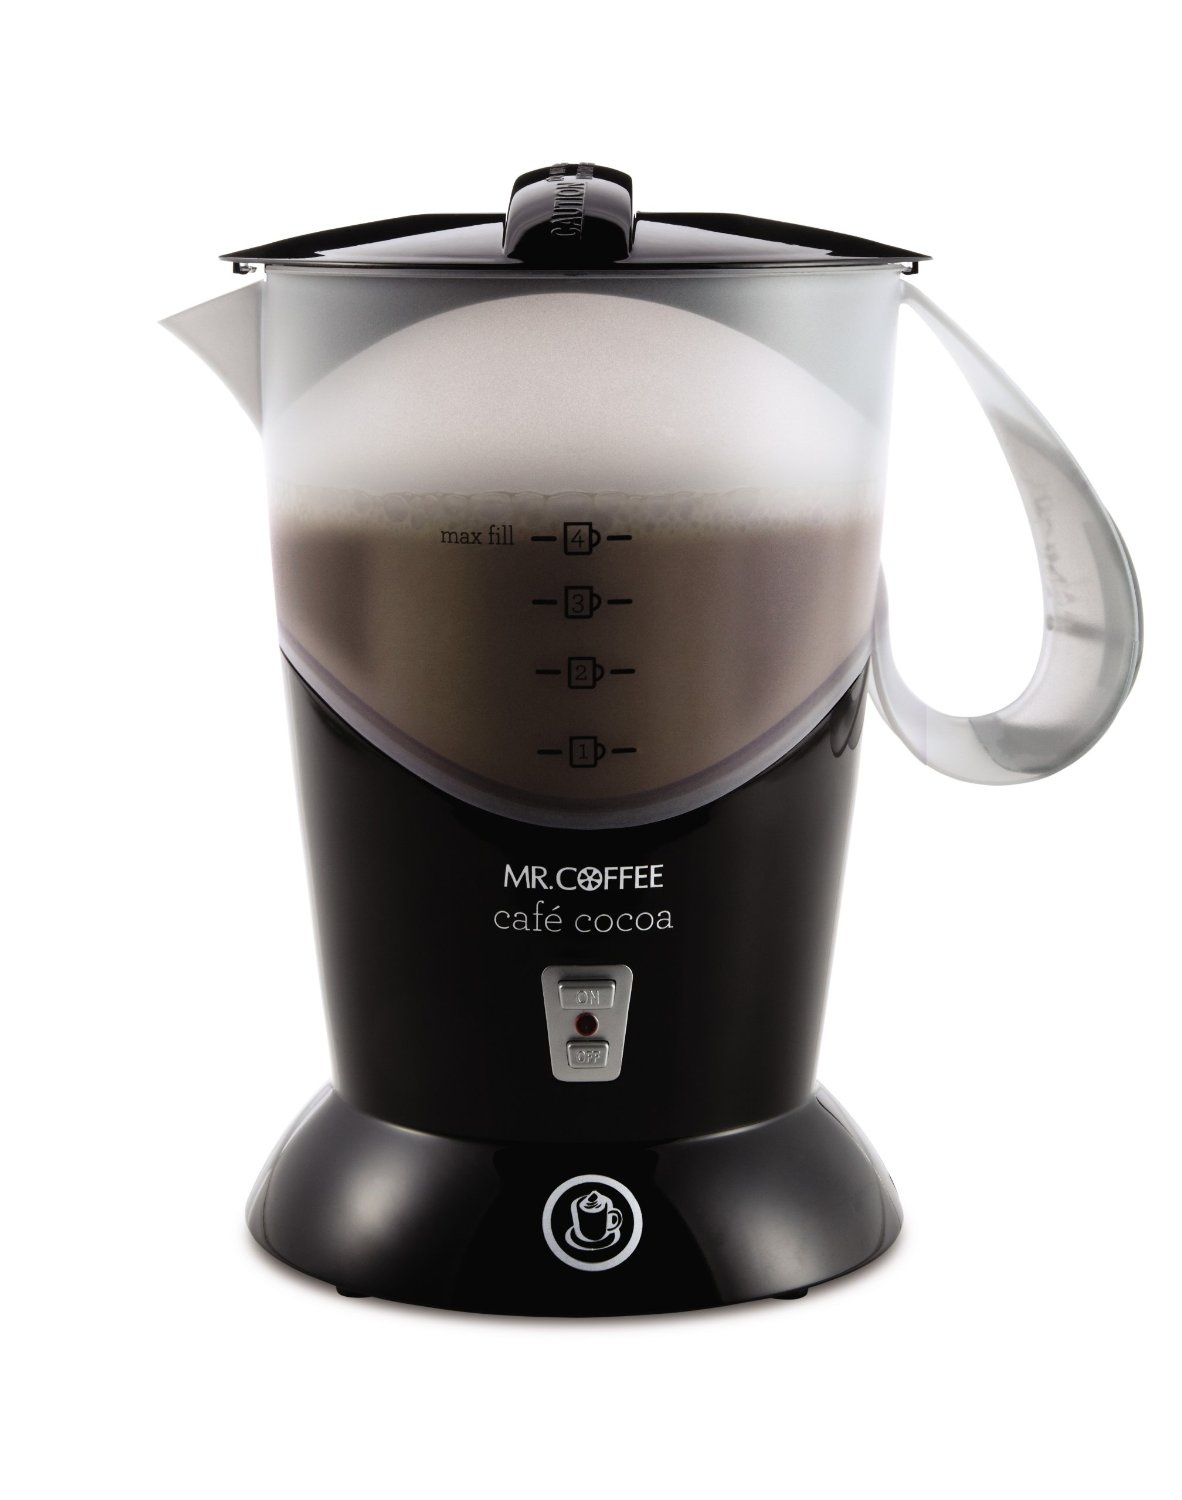 Mr. Coffee Cafe Cocoa Hot Chocolate Maker - Black (BVMC-HC5 ...